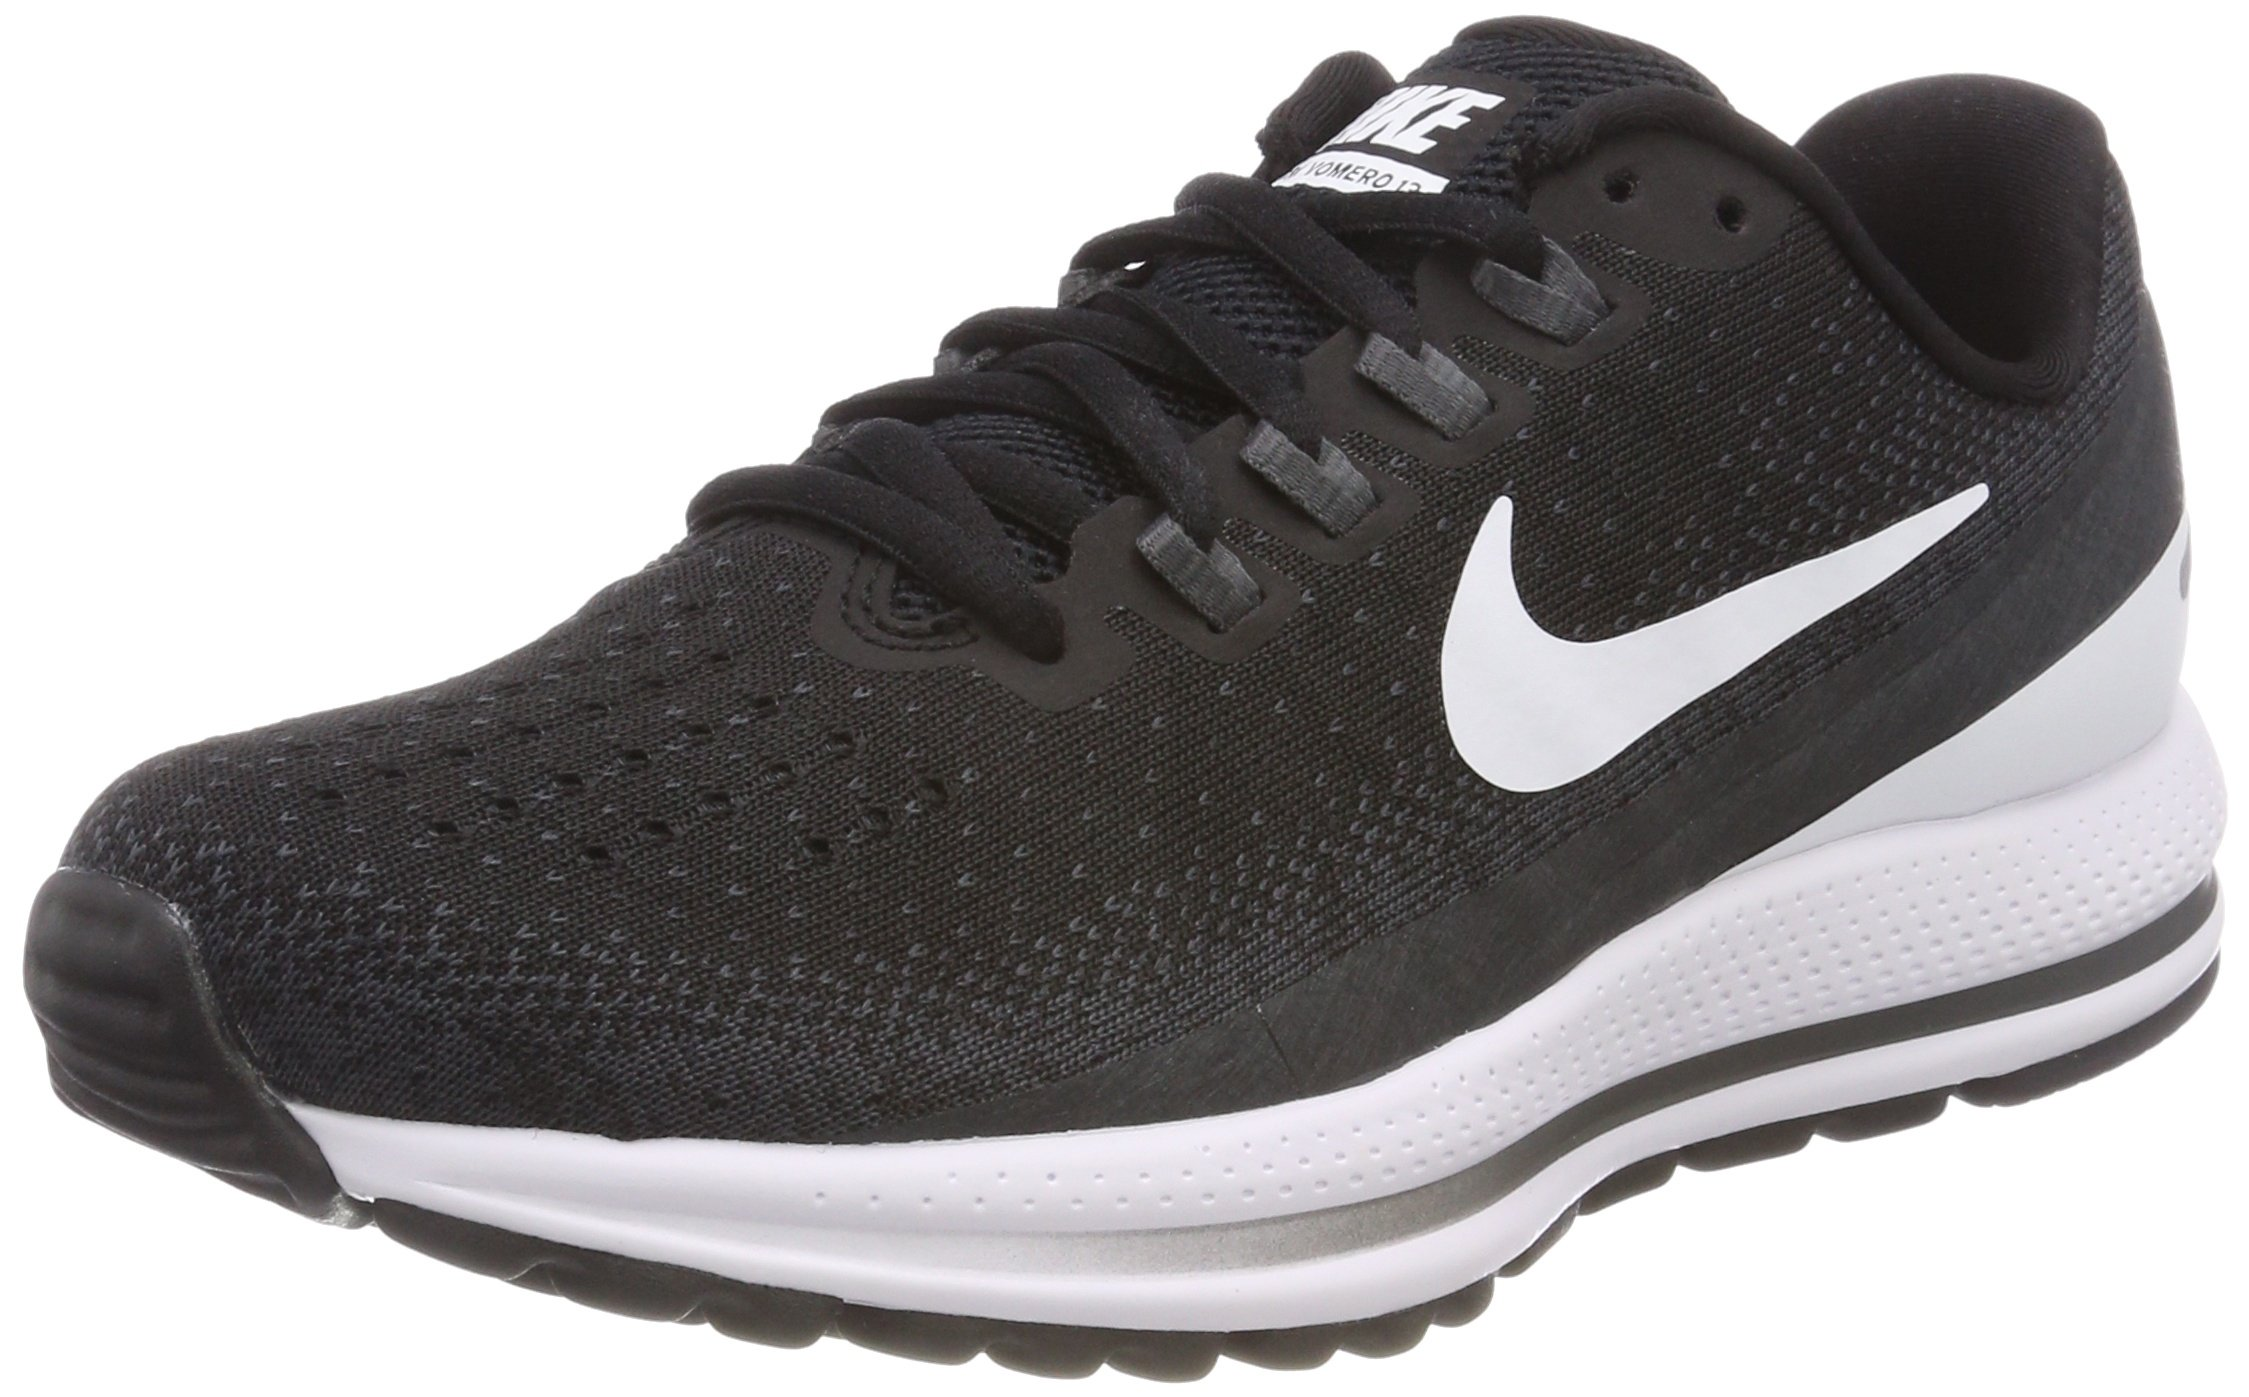 Nike Women's Air Zoom Vomero 13 Running Shoe Black/White-Anthracite 6.0